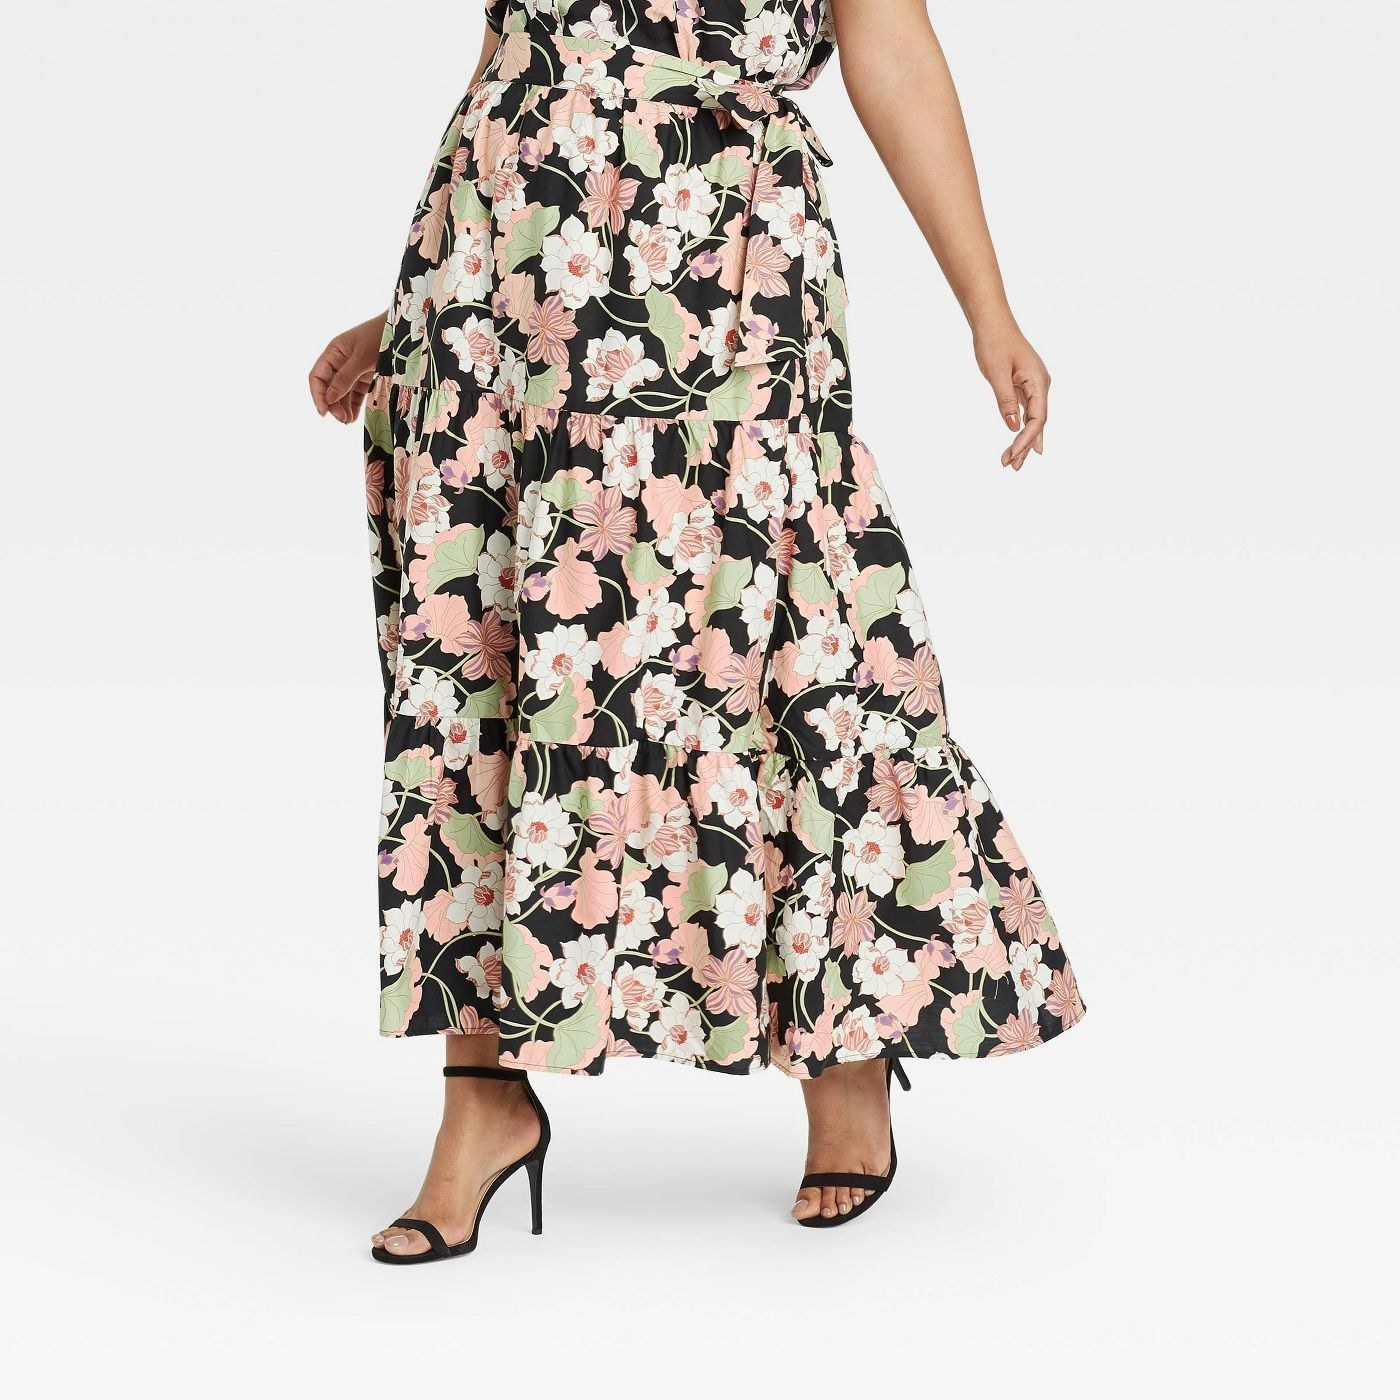 Model wearing black skirt with a green, white, and light pink floral pattern